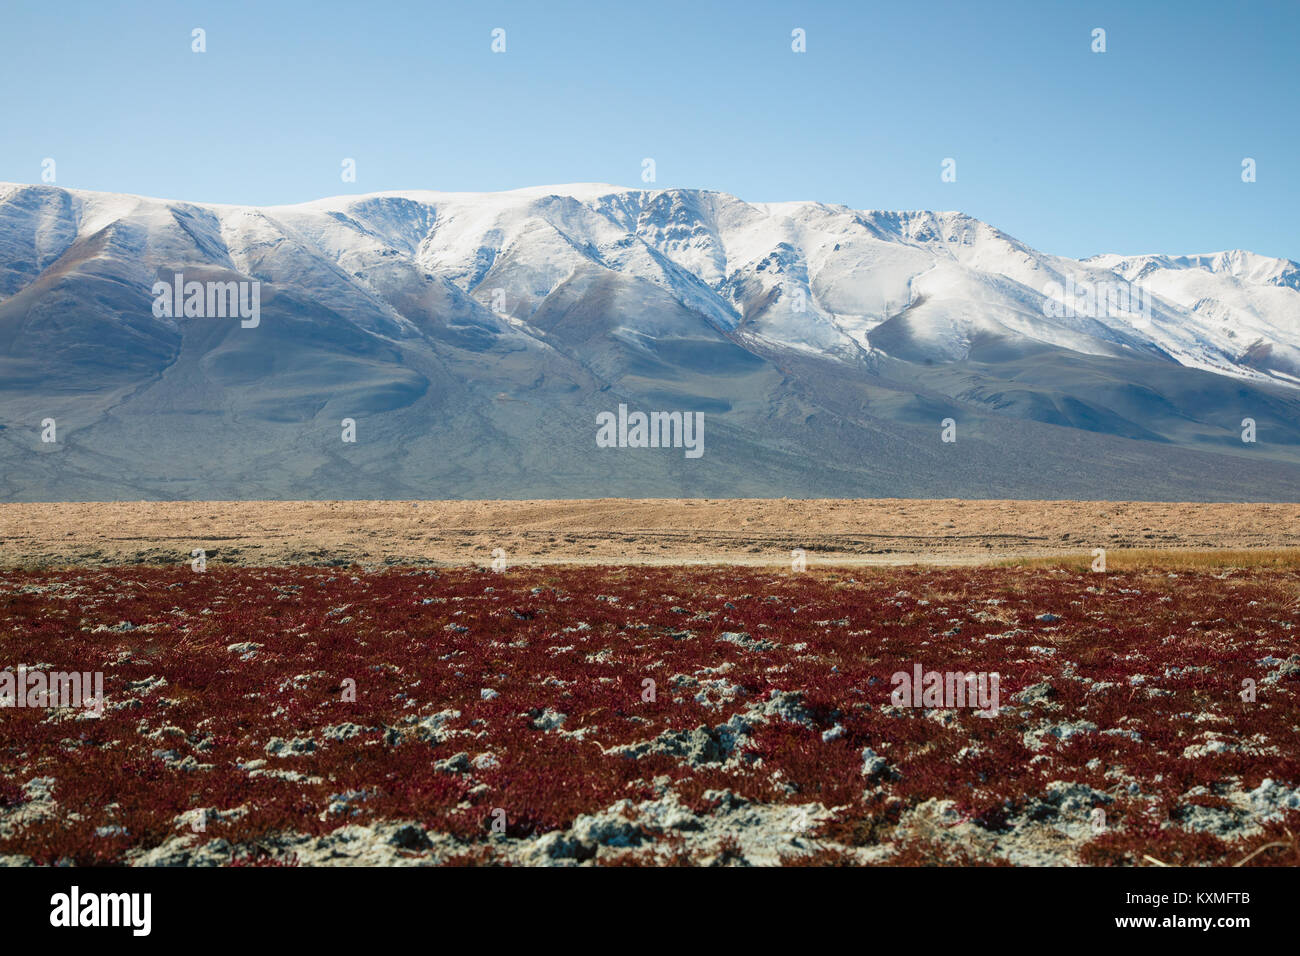 Snowy mountains red grass plants Mongolia steppes grasslands - Stock Image